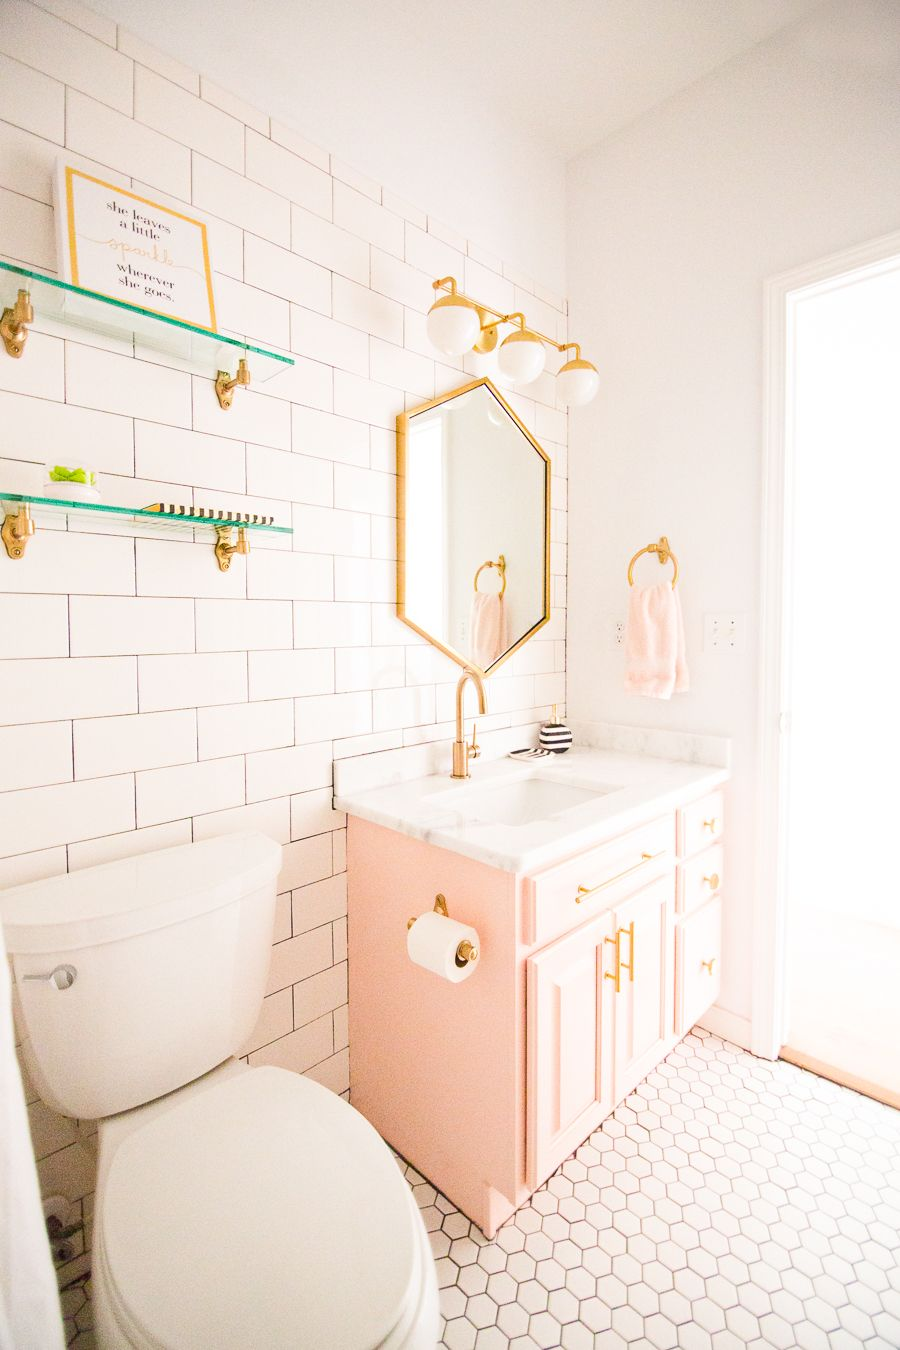 Modern Glam Blush Girls Bathroom Design   CC and MIke   Design Blog is part of Bathroom - I am so very excited to share with you our Modern Glam Blush Girls Bathroom Design from our most recent remodel reveal  Our Modern White Farmhouse Reveal